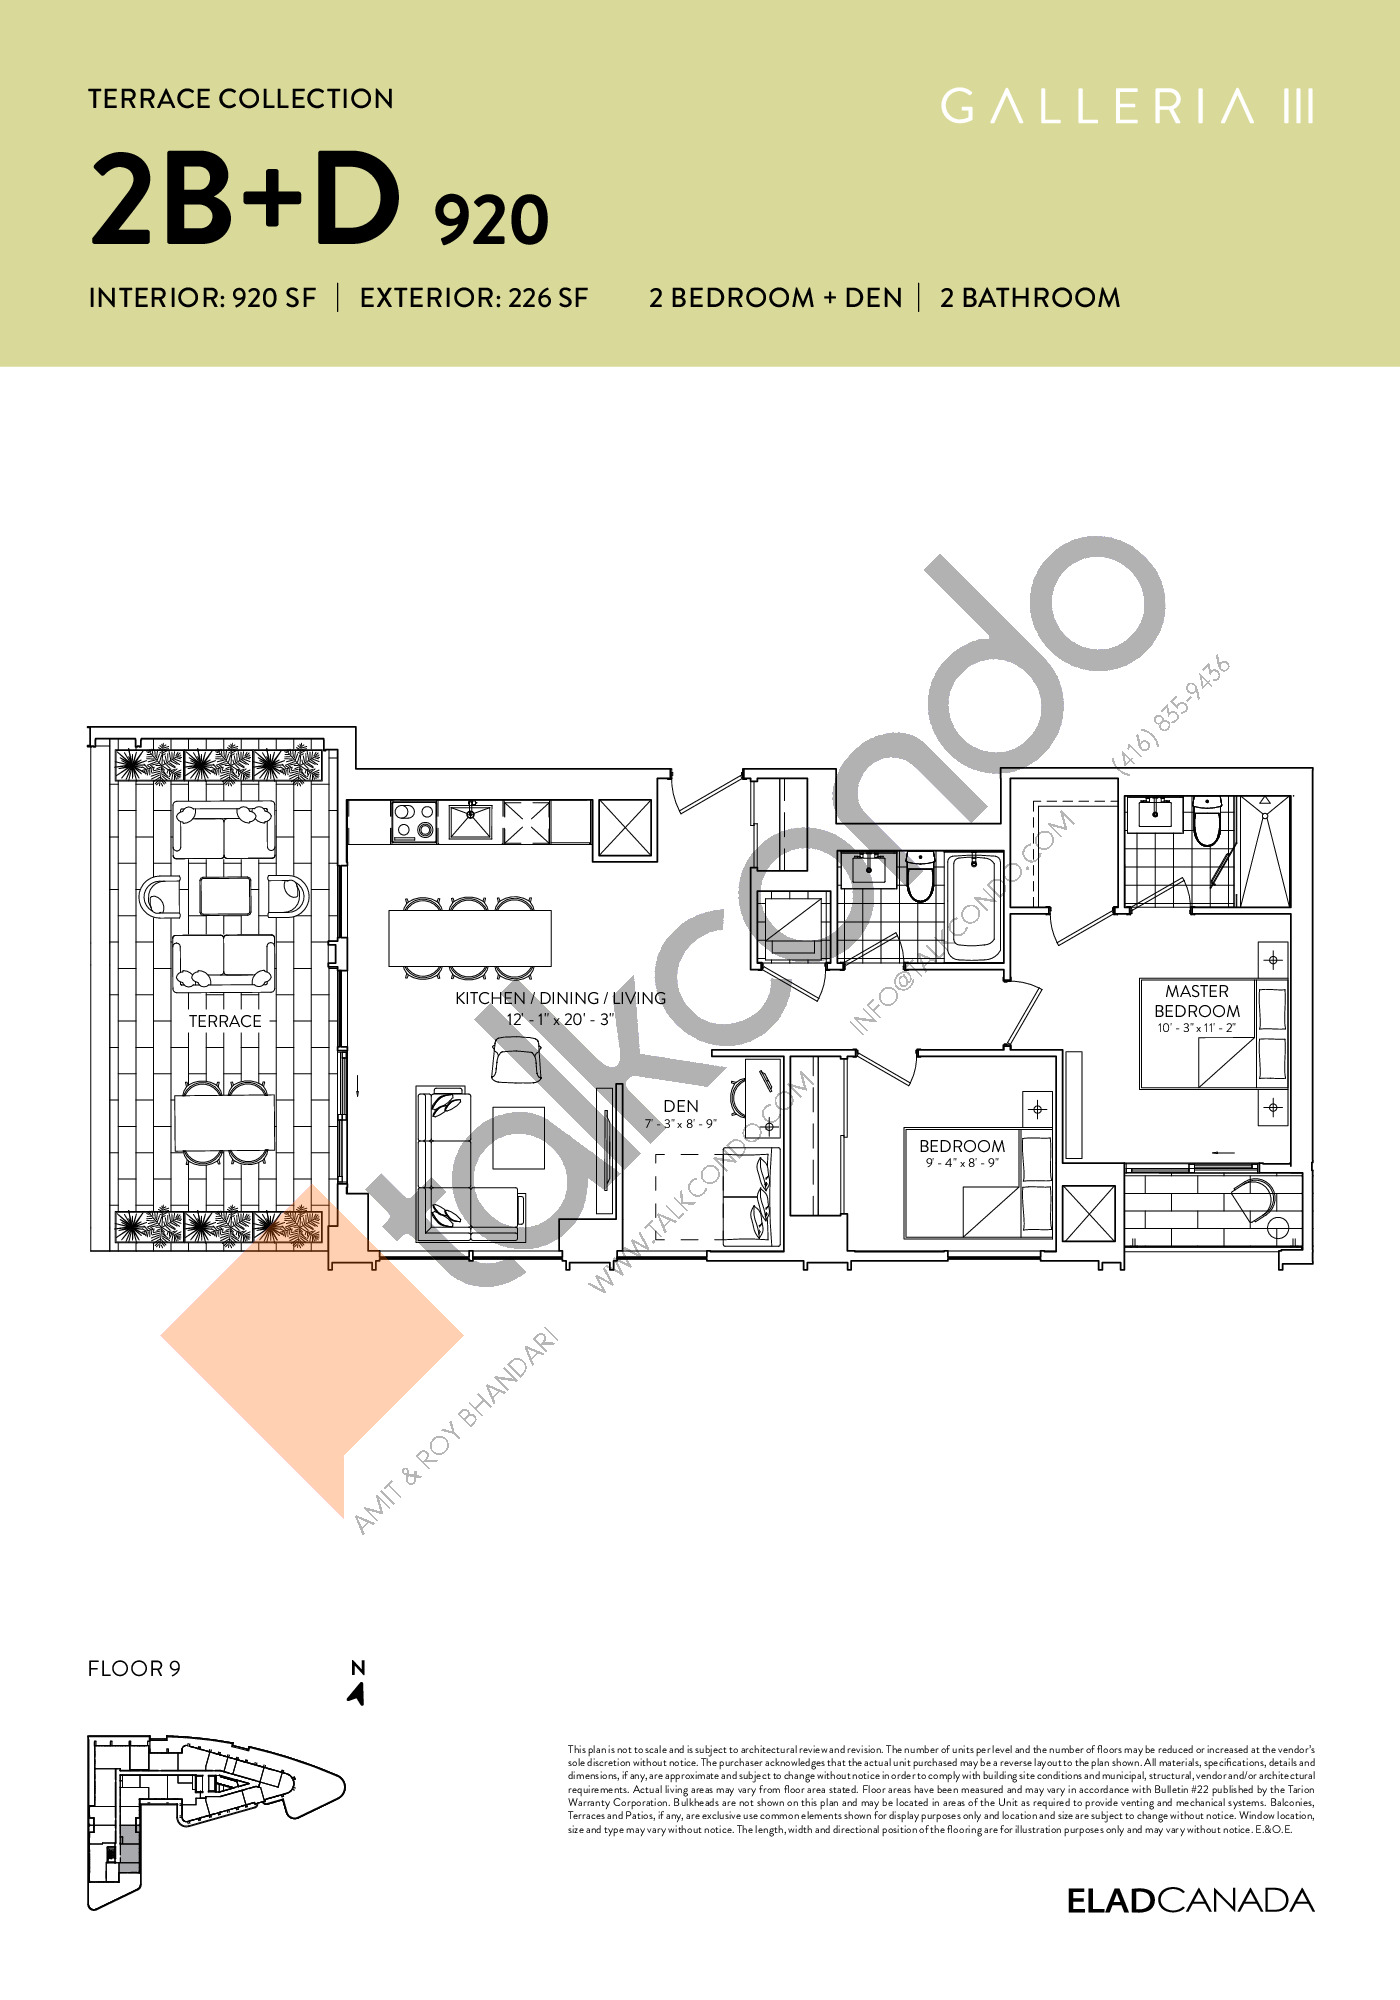 2B+D 920 - Terrace Collection Floor Plan at Galleria 03 Condos - 920 sq.ft